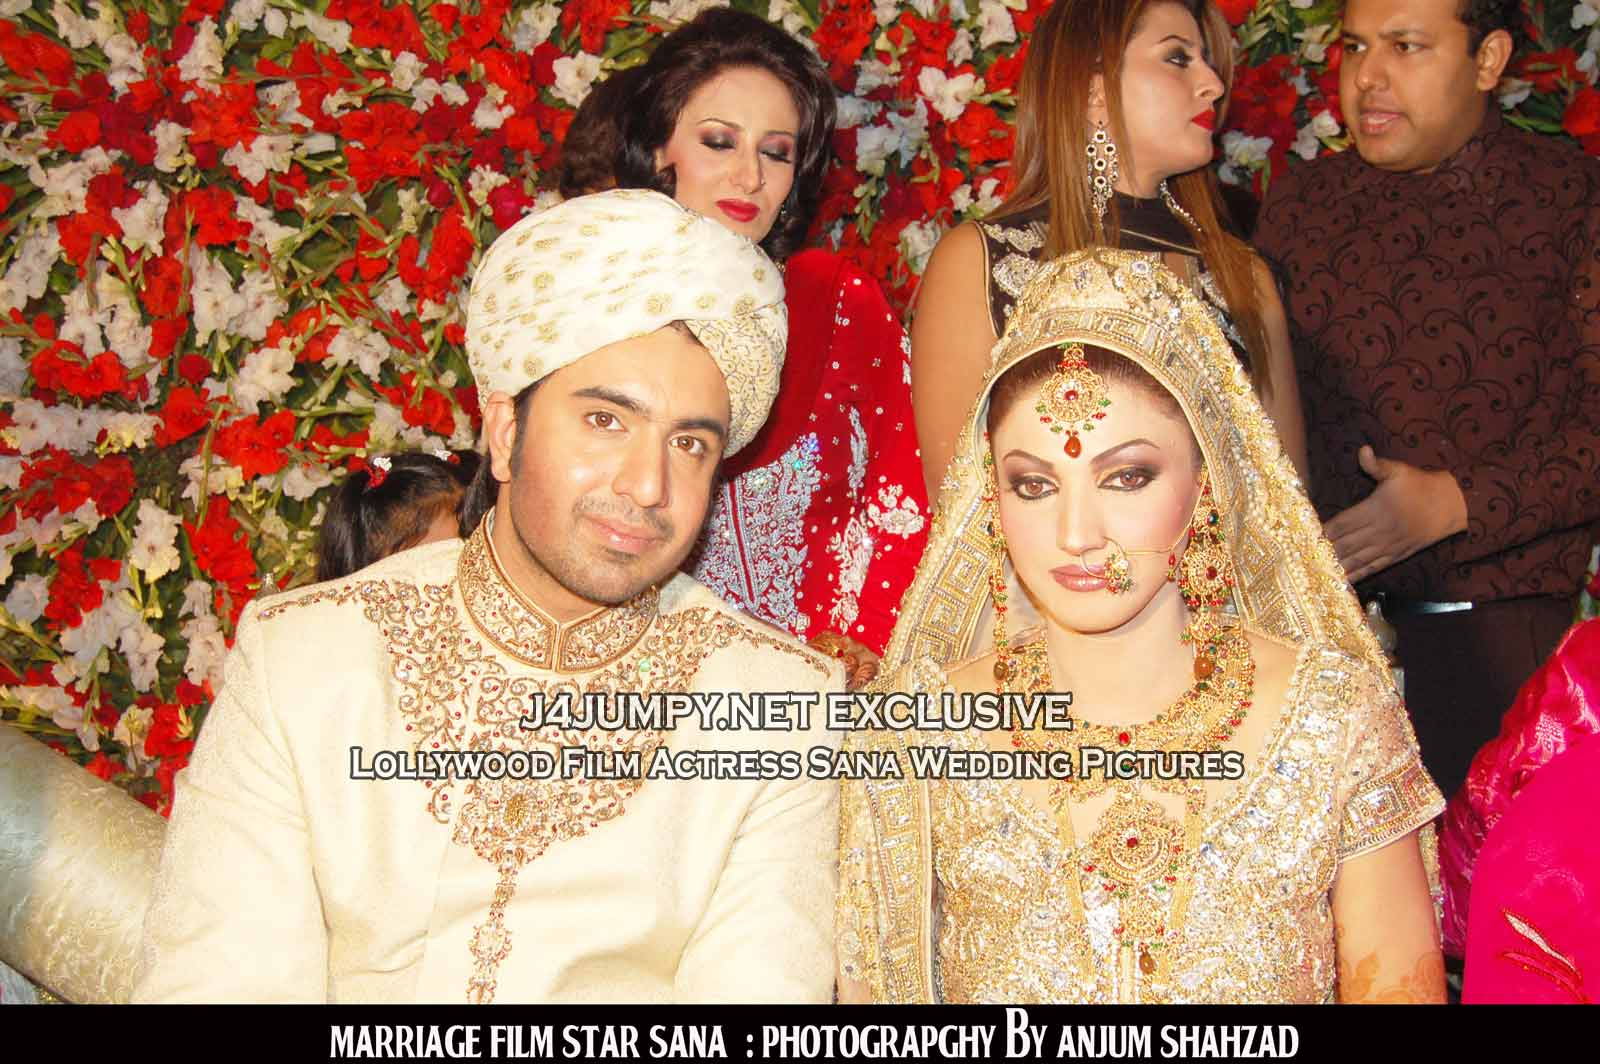 Lollywood Film Actress Sana Wedding Pictures